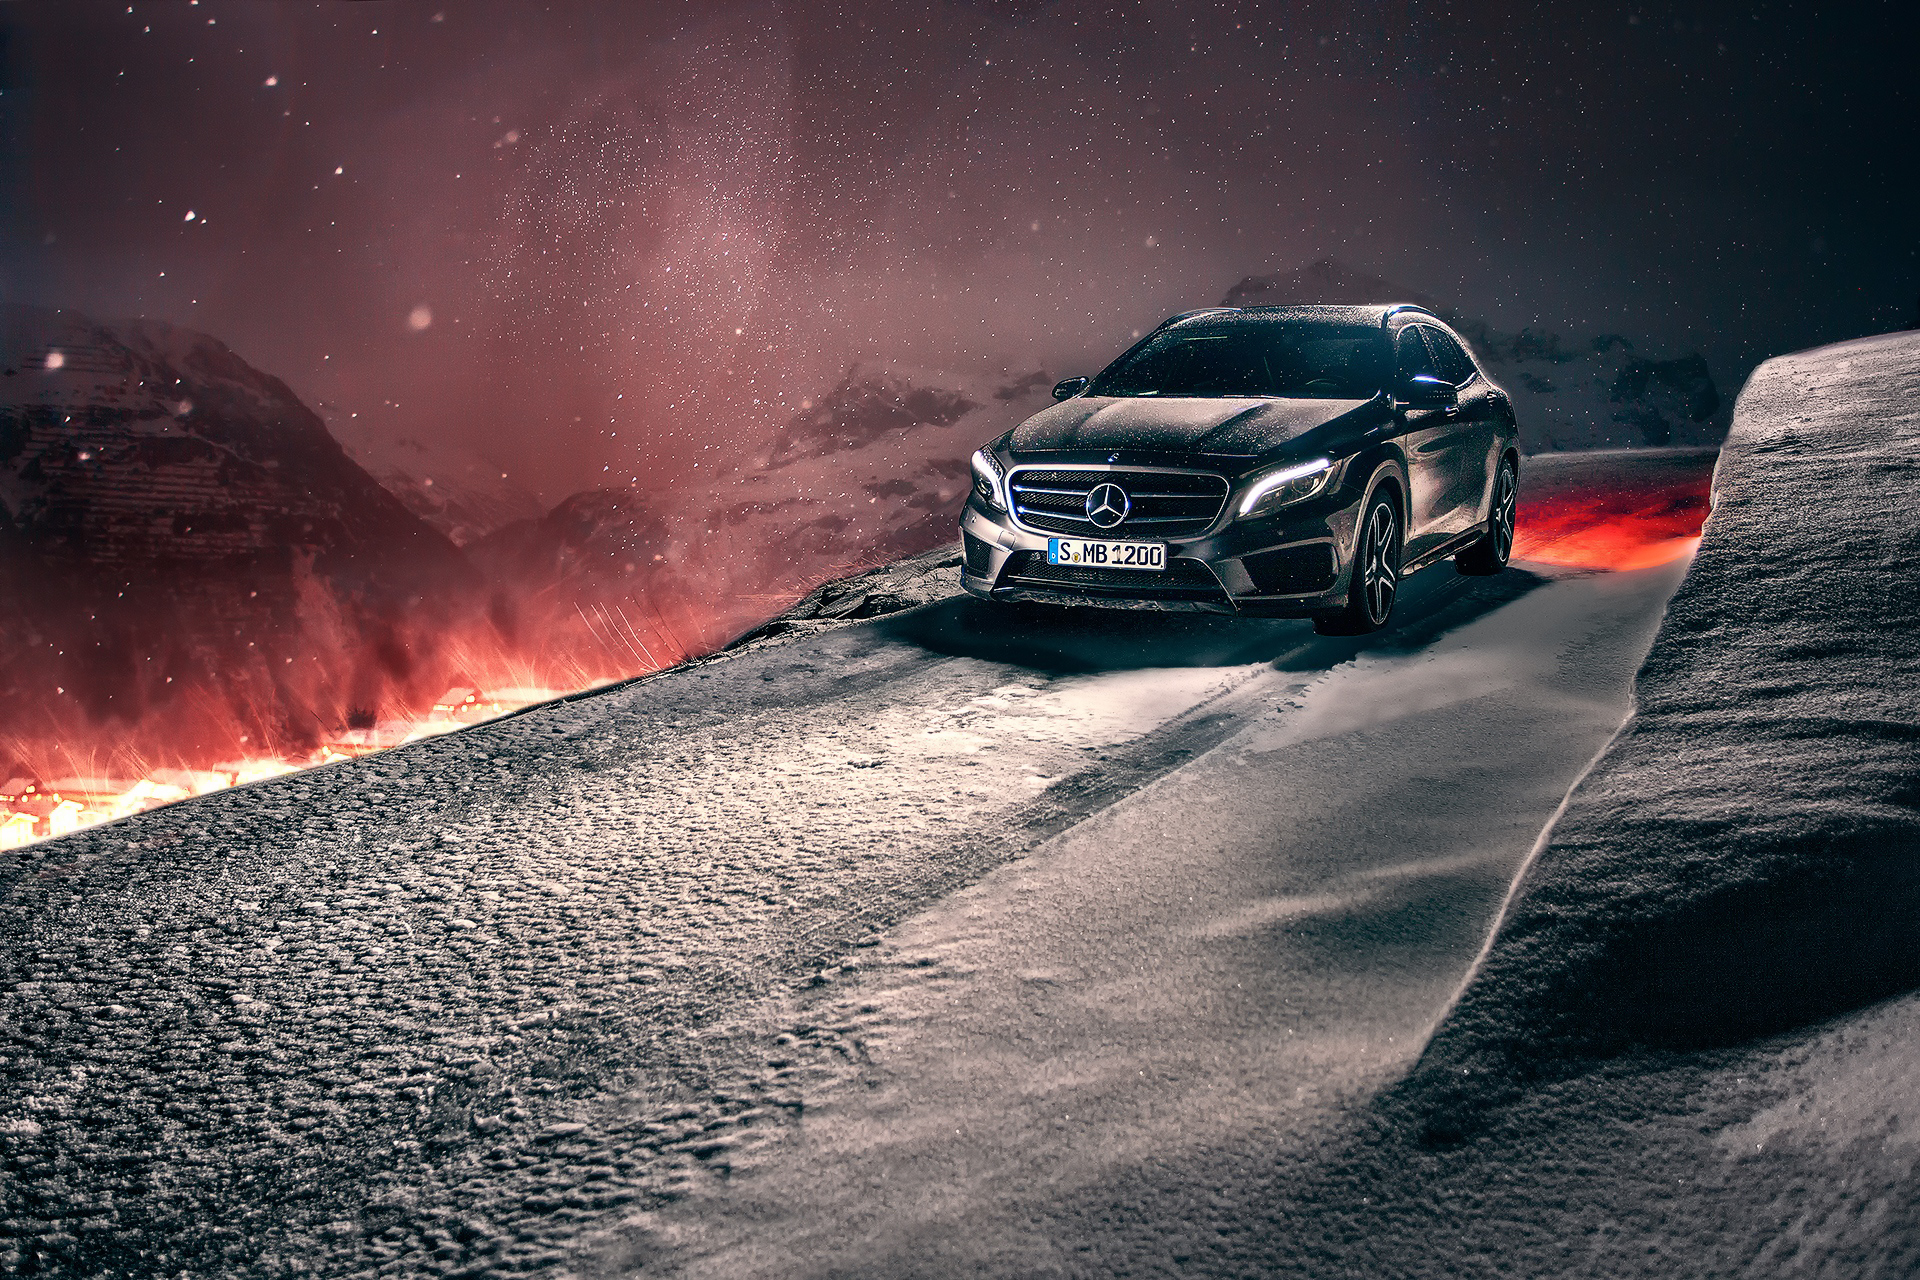 69586 download wallpaper Winter, Snow, Cars, Concept, Mercedes-Benz, Crossover, Gla screensavers and pictures for free